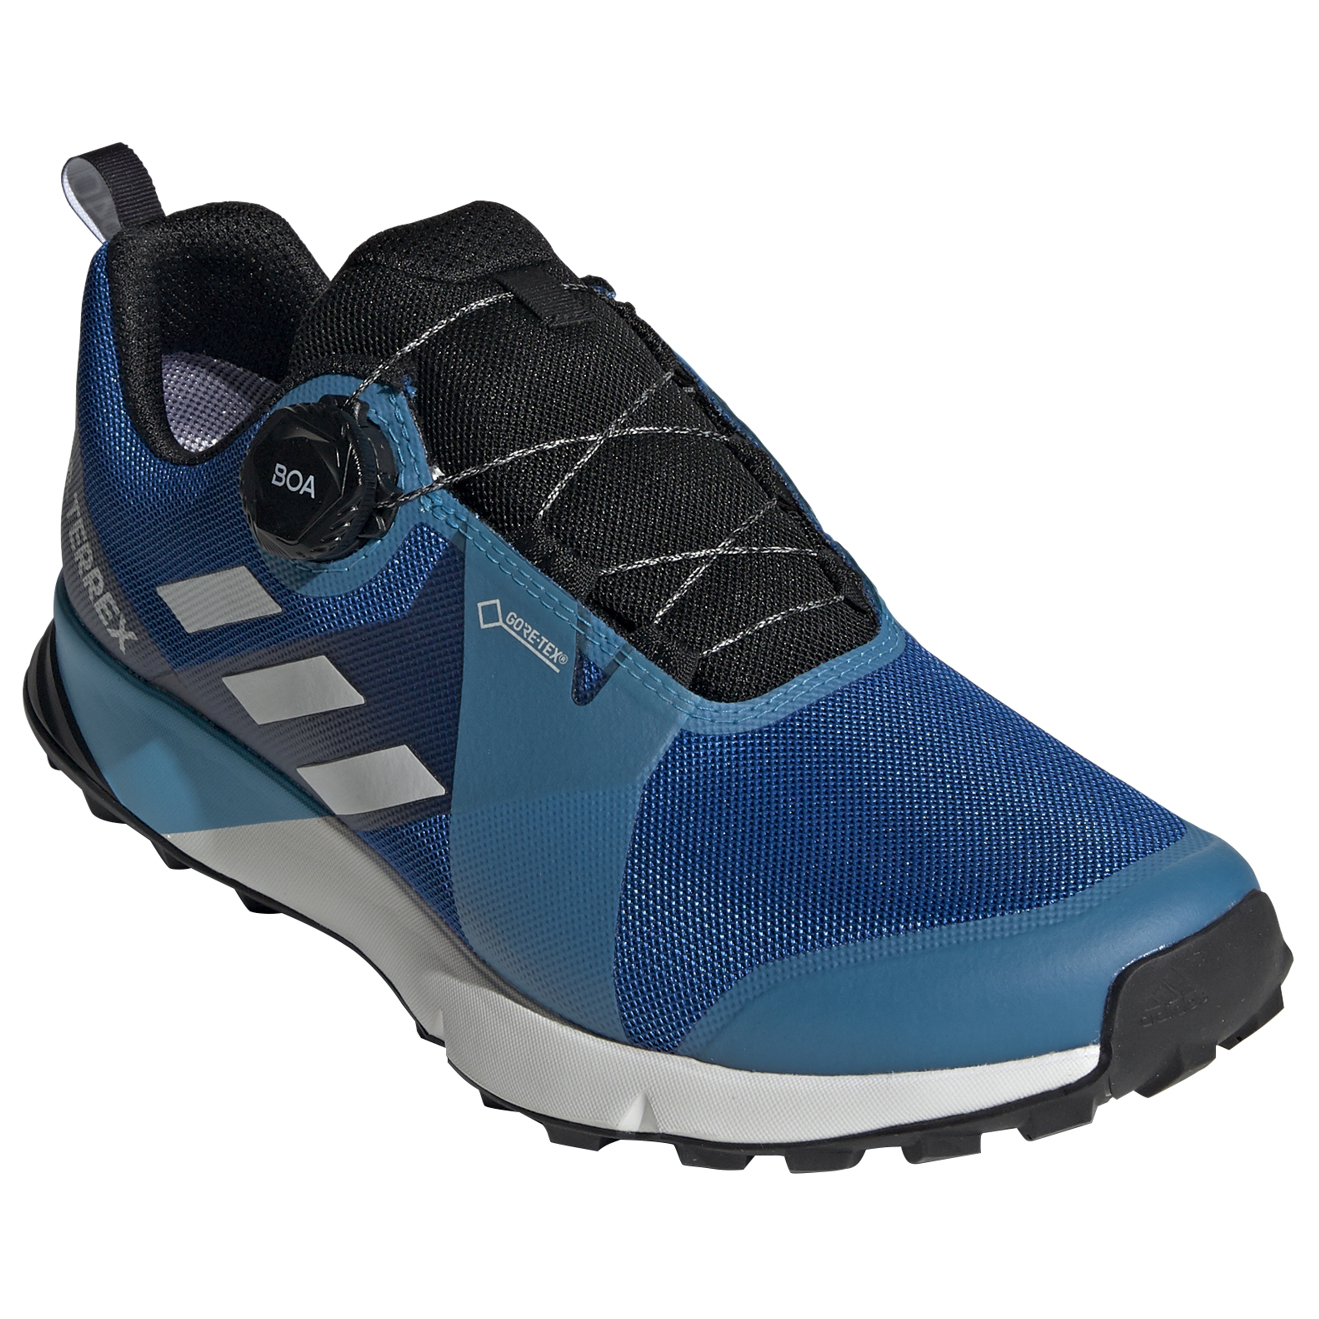 Despertar claro Buena suerte  Adidas Terrex Two Boa GTX - Trail running shoes Men's | Buy online |  Bergfreunde.eu